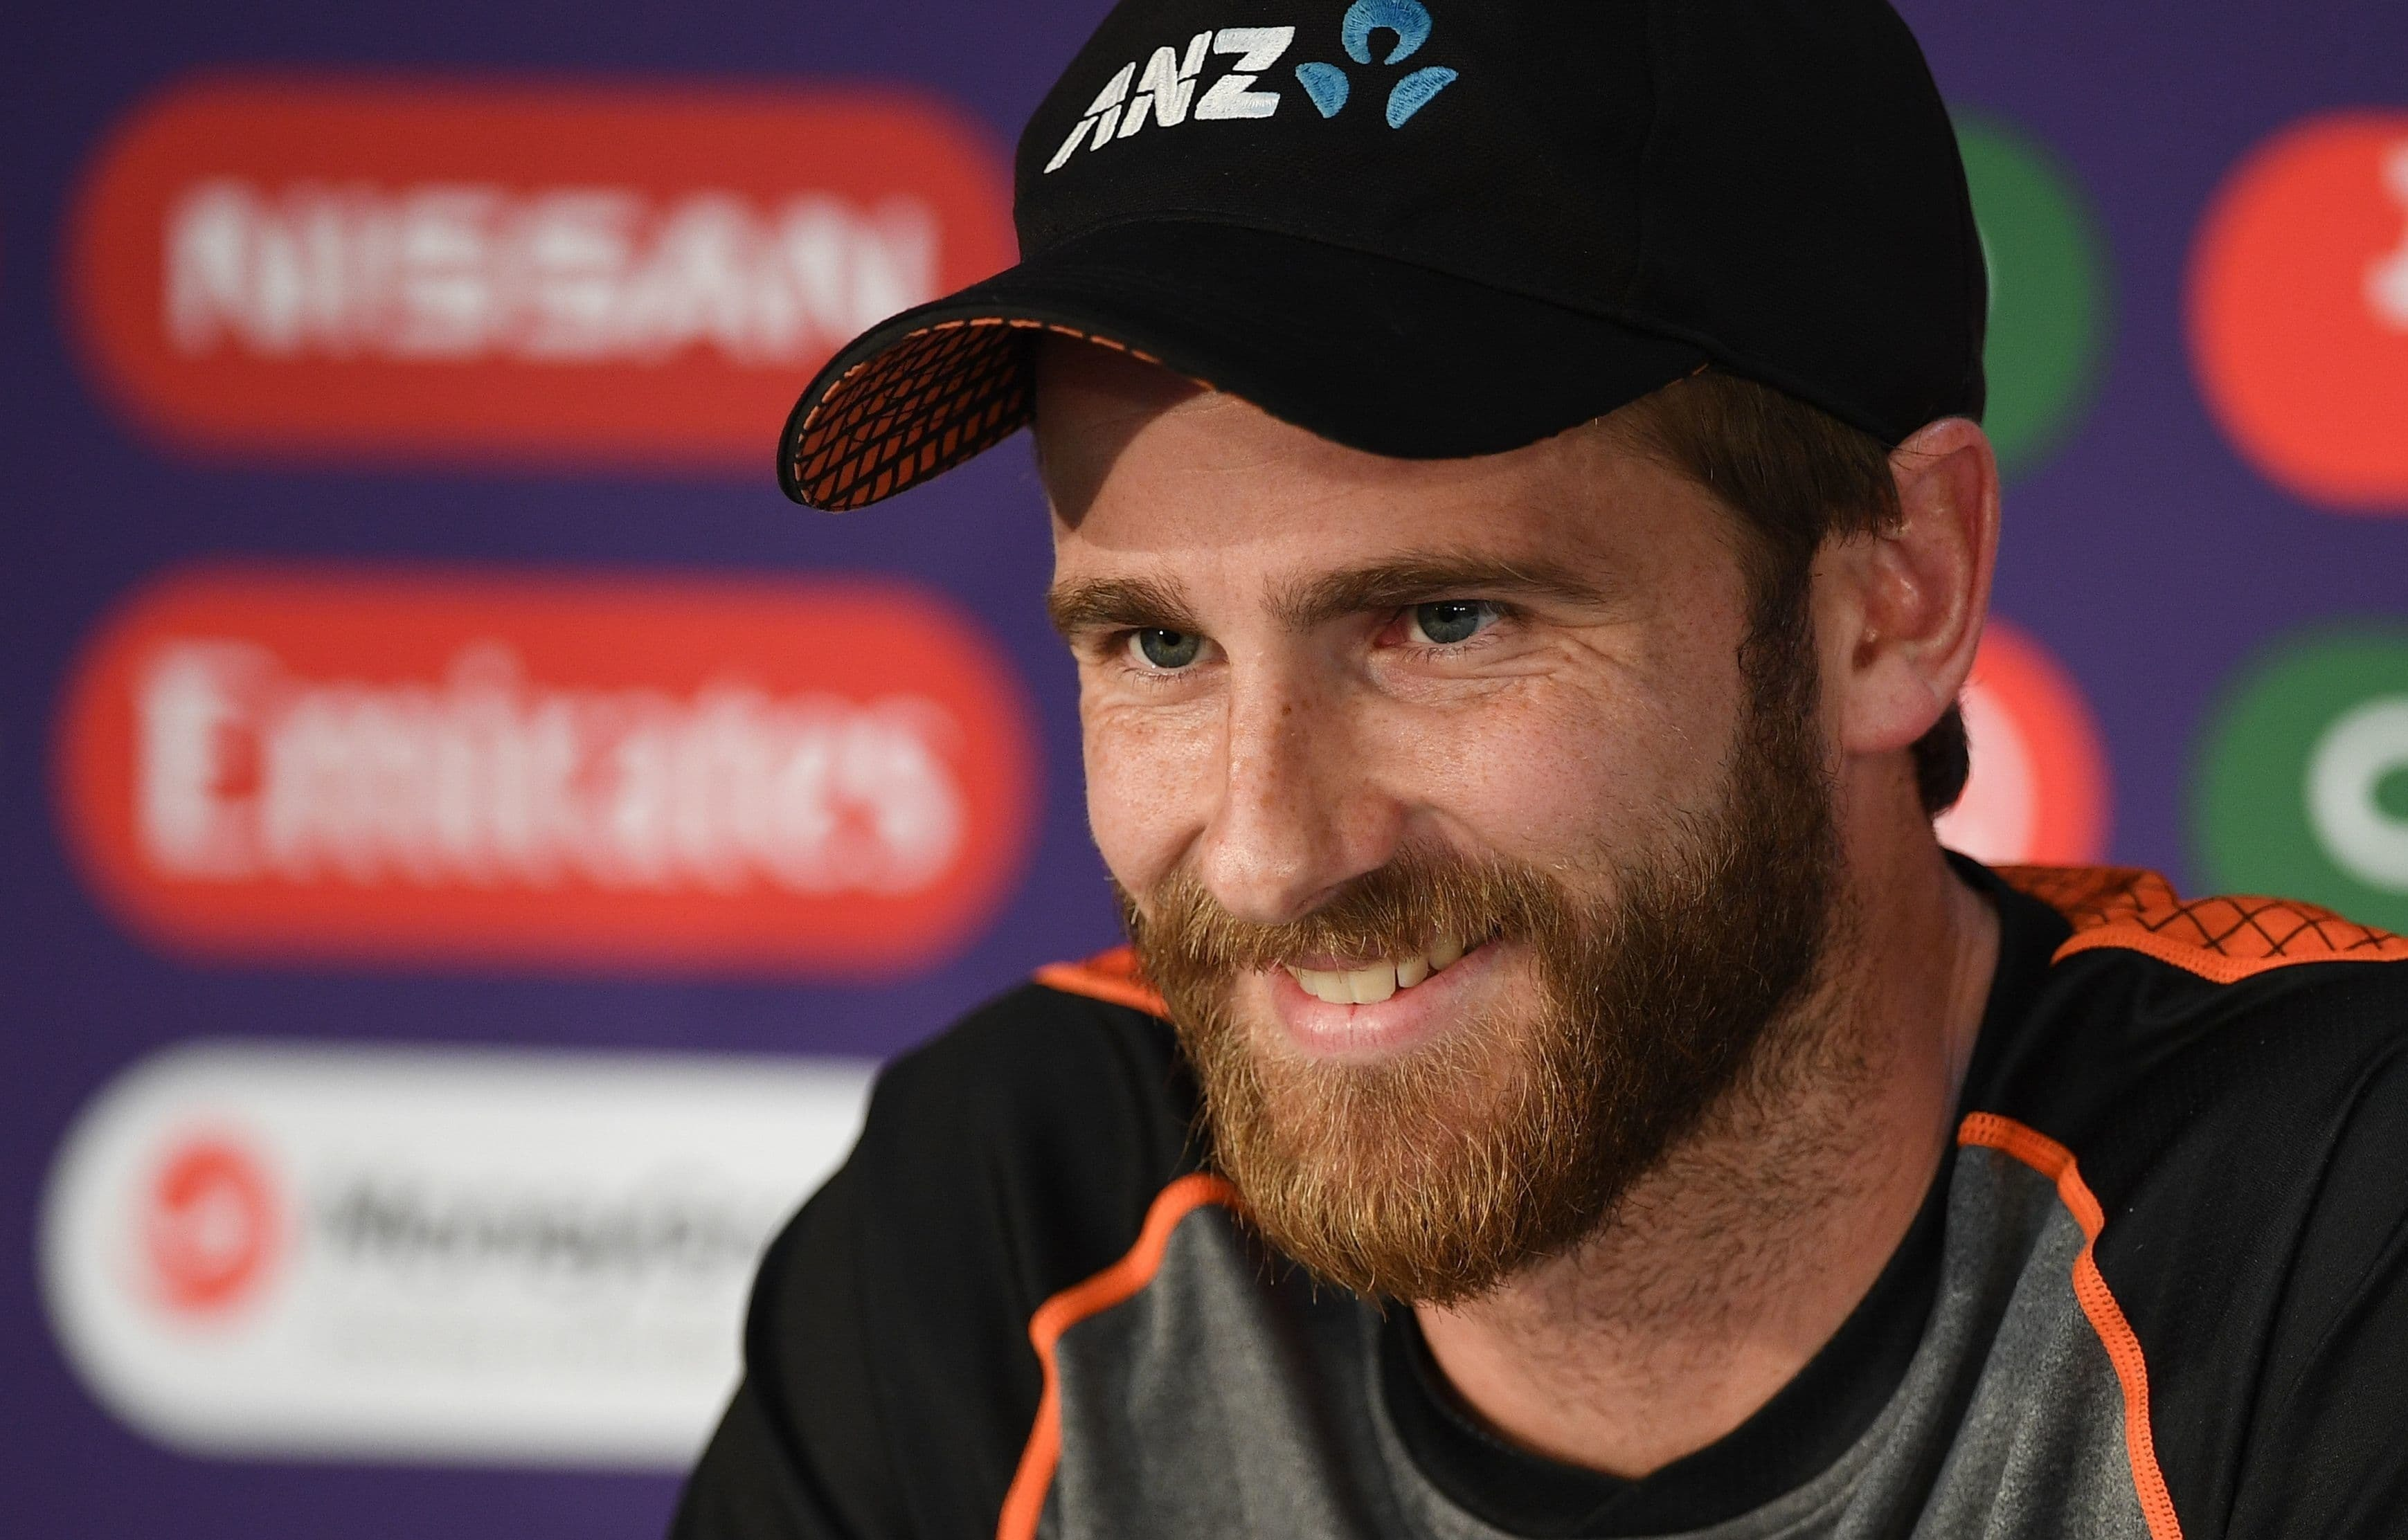 New Zealand's captain Kane Williamson attends a press conference at Lord's in London on June 28 ahead of their 2019 Cricket World Cup group stage match against Australia. — AFP/File